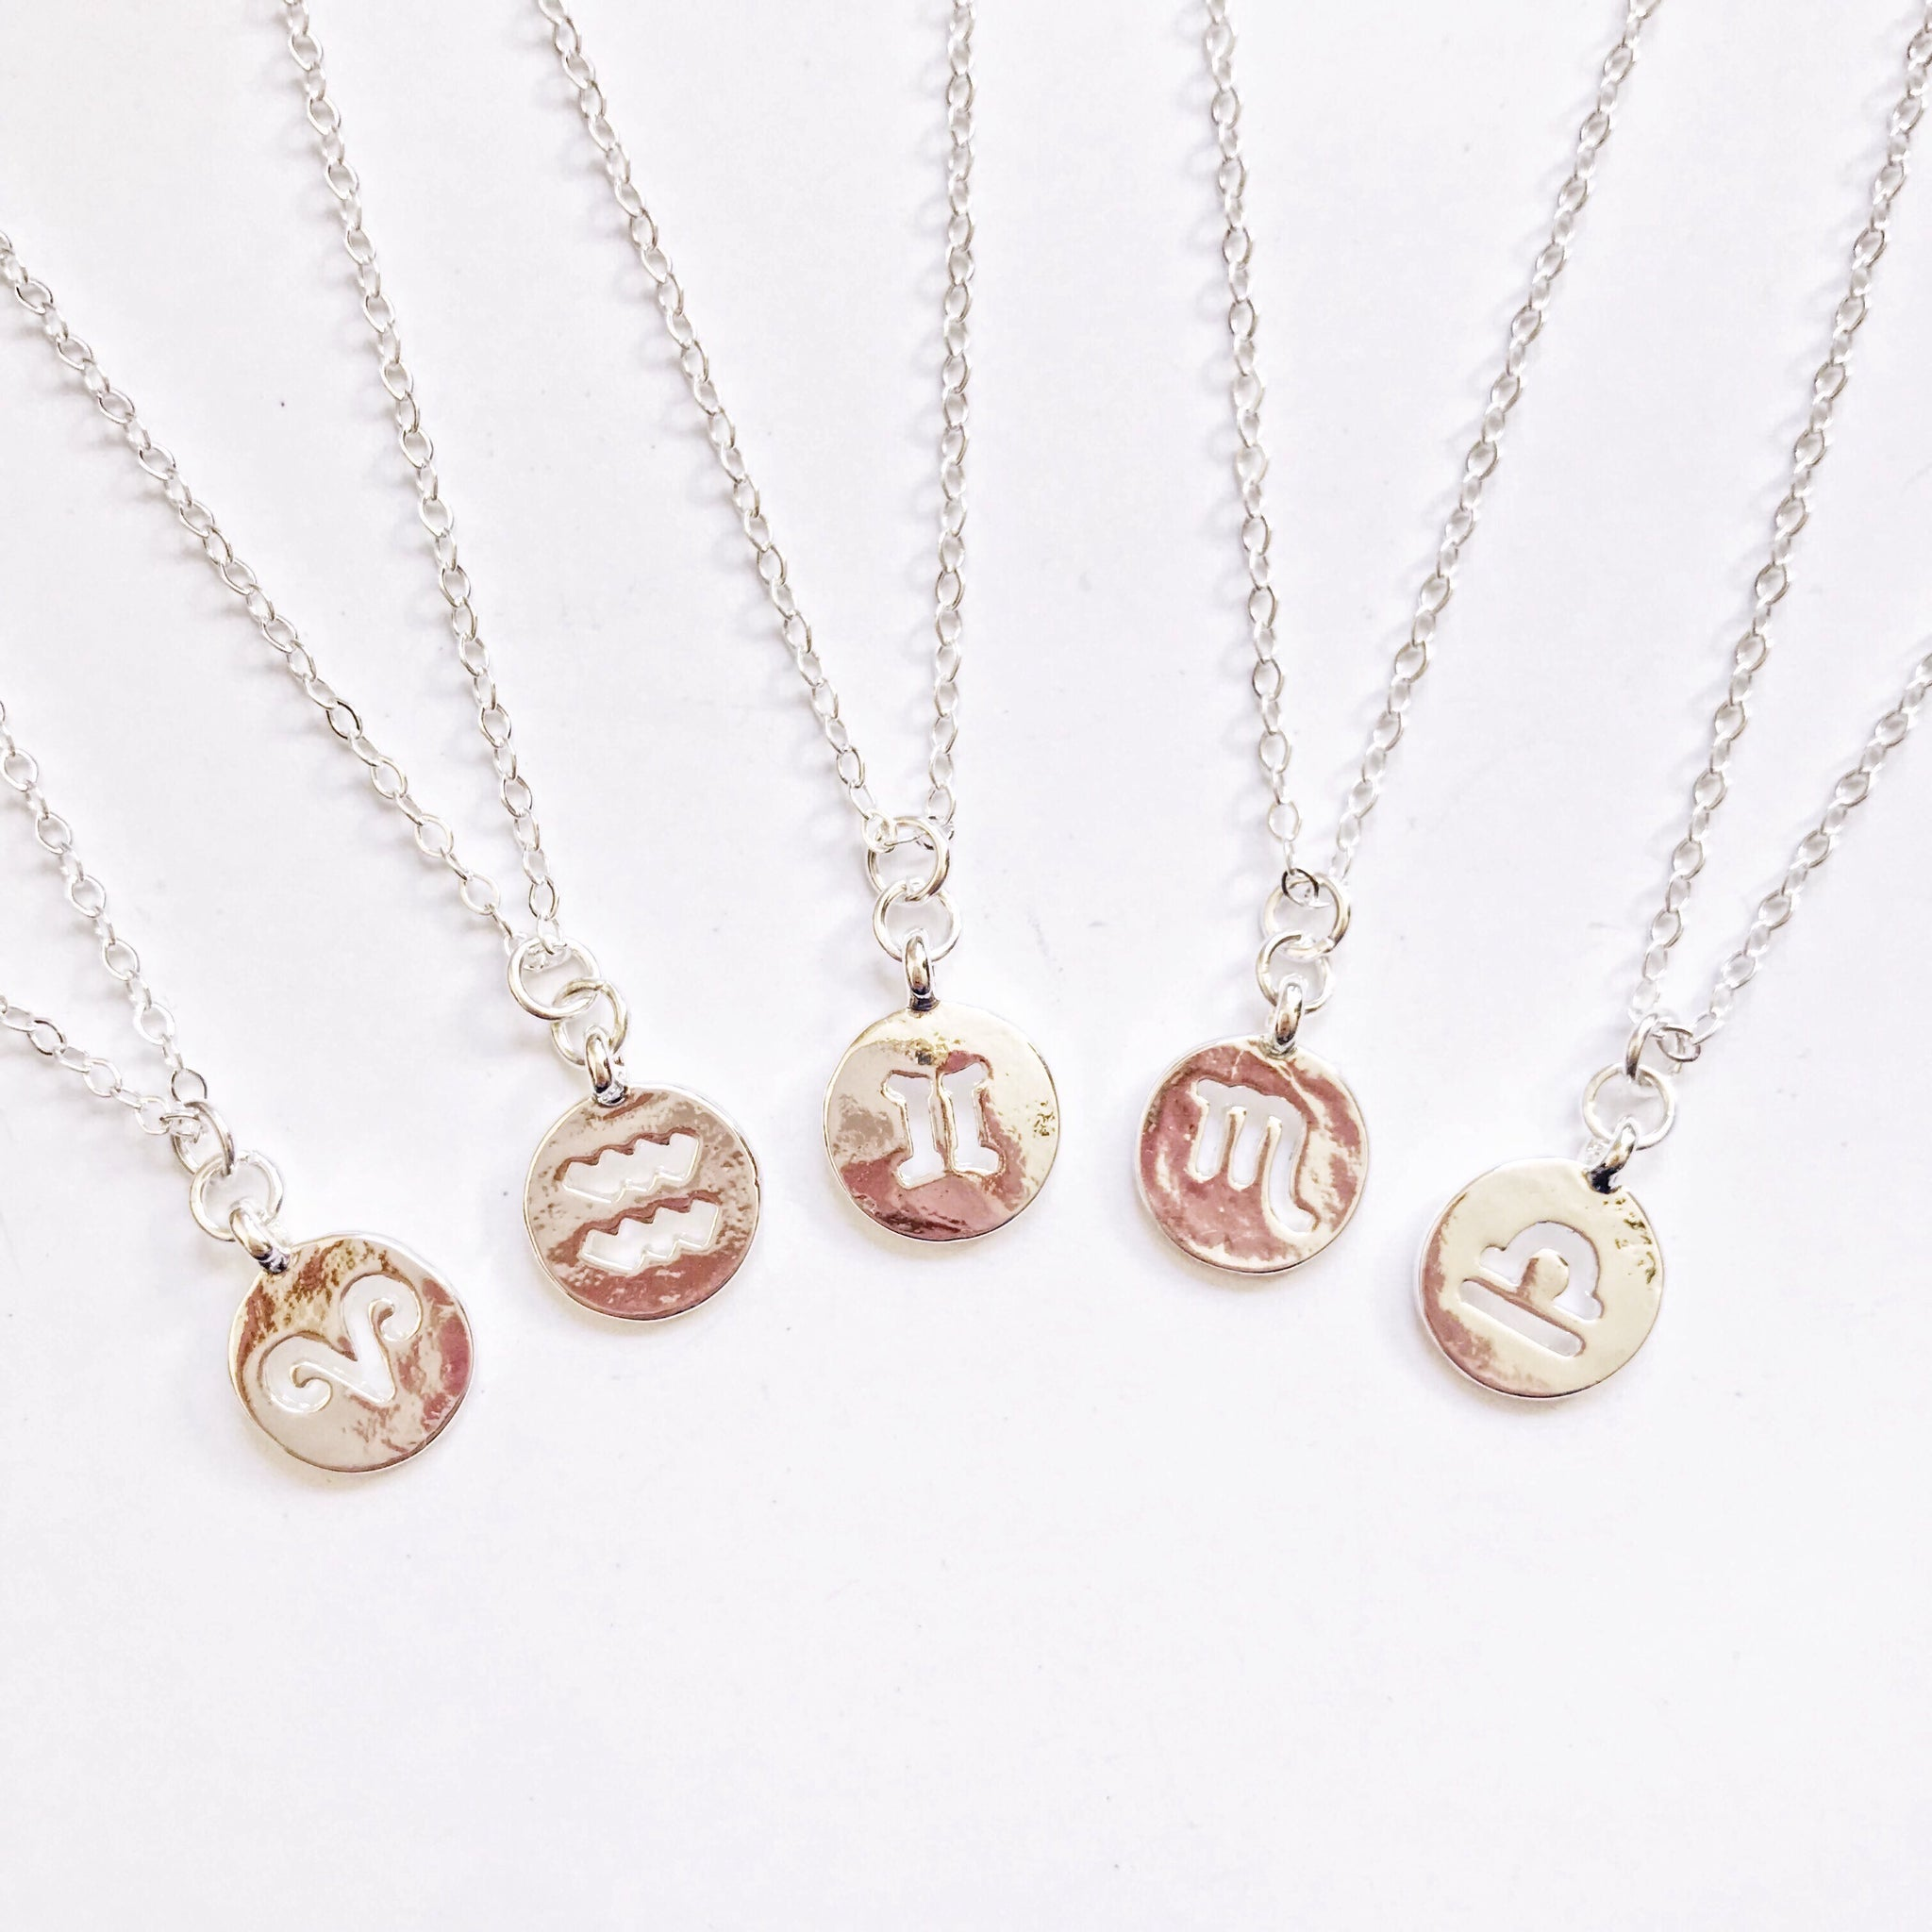 august astrology new all view july shop to necklace uk web zodiac leo